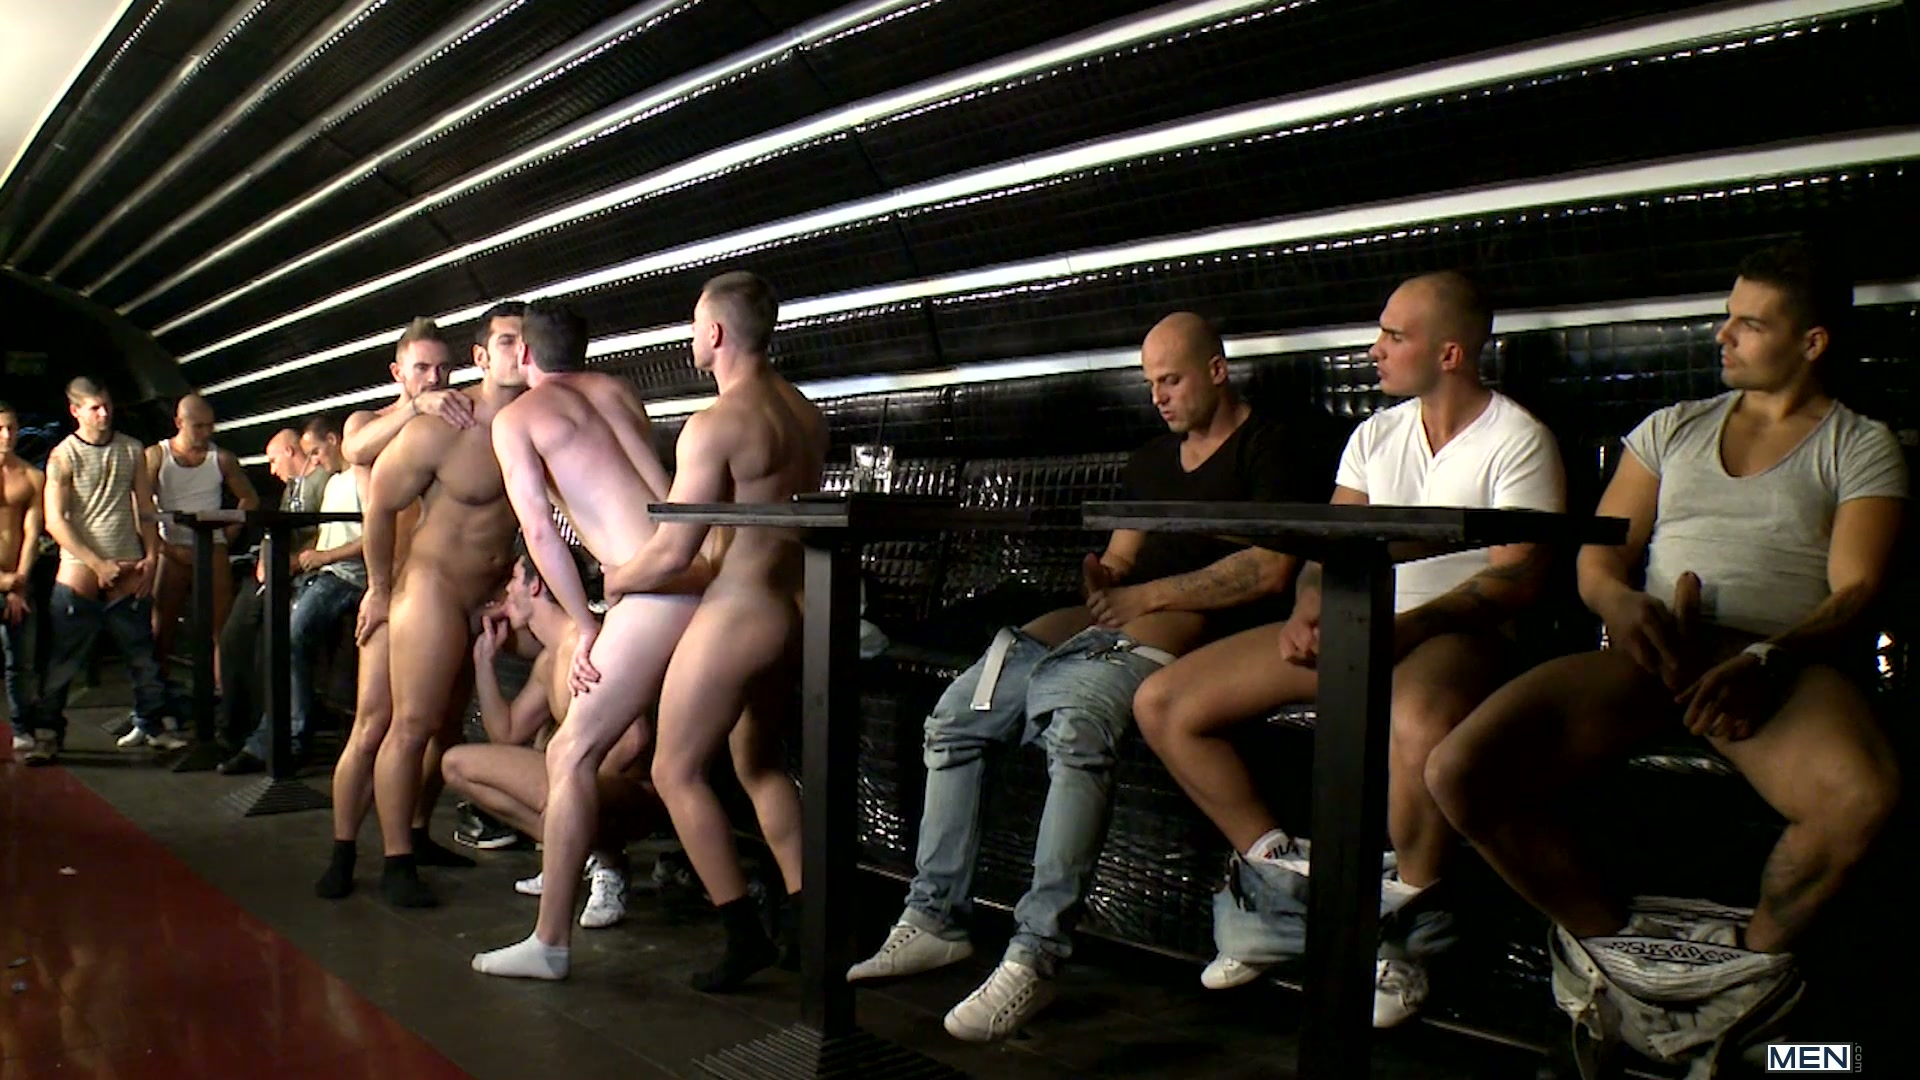 Watch Men In Budapest 8 – Jizz Orgy – Marcus Ruhl – Andrew Stark – Jeffrey   Branson – Kyler Braxton – Gabe Russel (MEN.COM) Gay Porn Tube Videos Gifs And Free XXX HD Sex Movies Photos Online